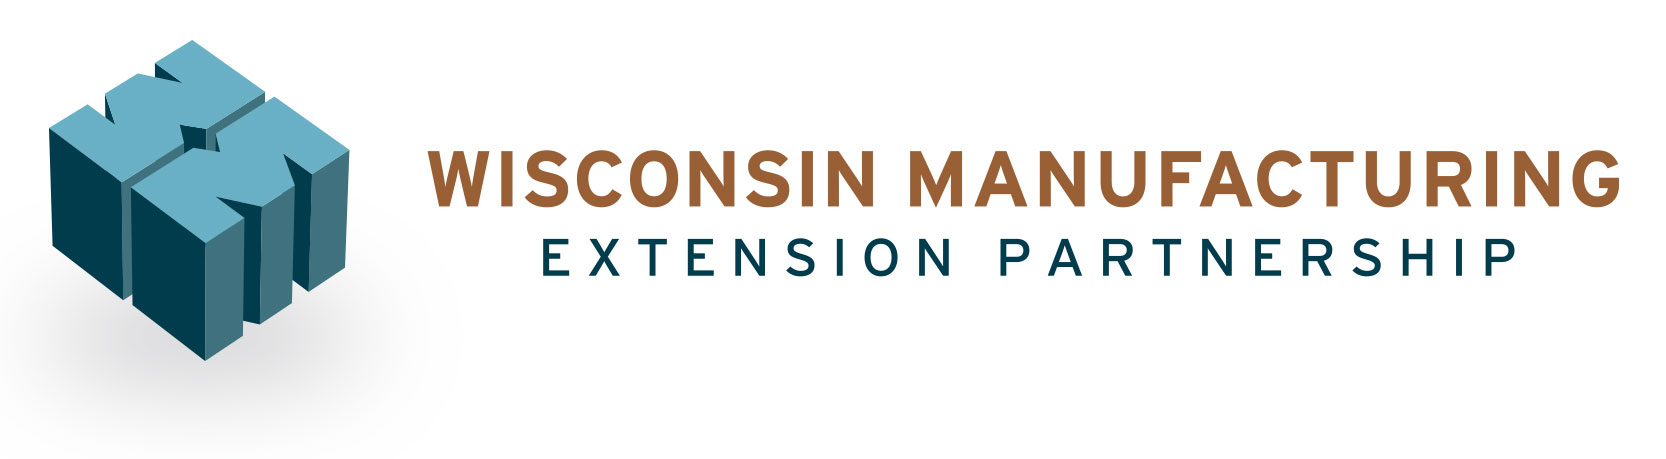 Wisconsin Manufacturing Extension Partnership (WMEP)